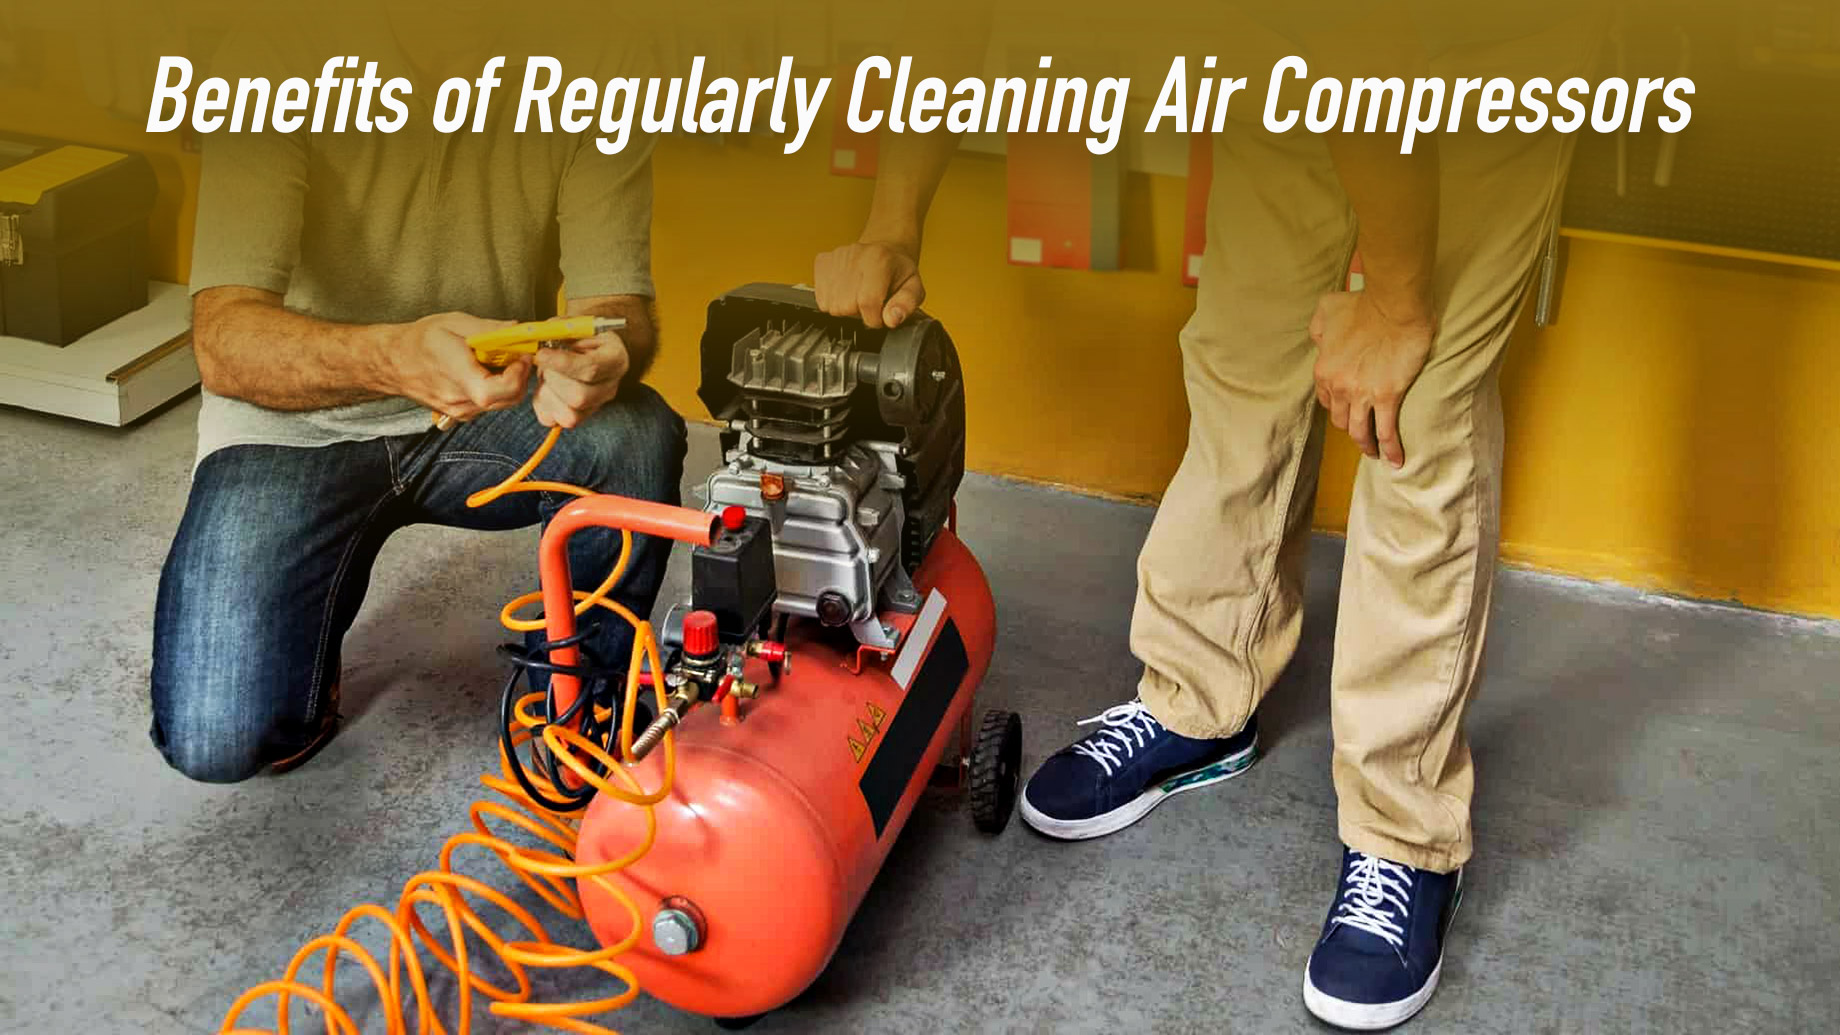 Benefits of Regularly Cleaning Air Compressors